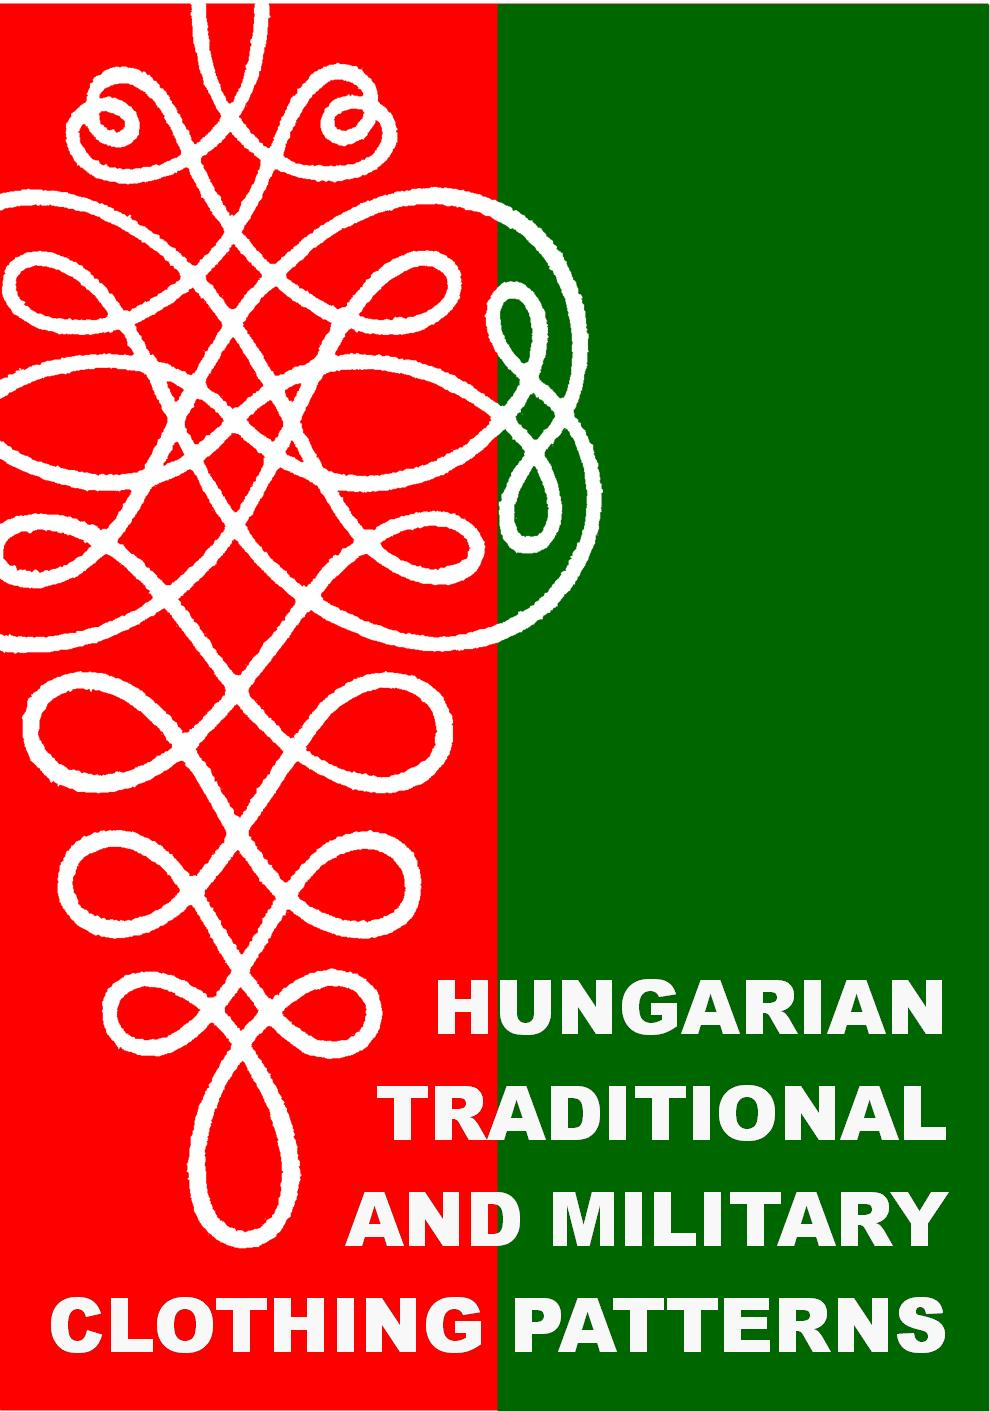 1930s HUNGARIAN TRADITIONAL AND MILITARY CLOTHING PATTERNS